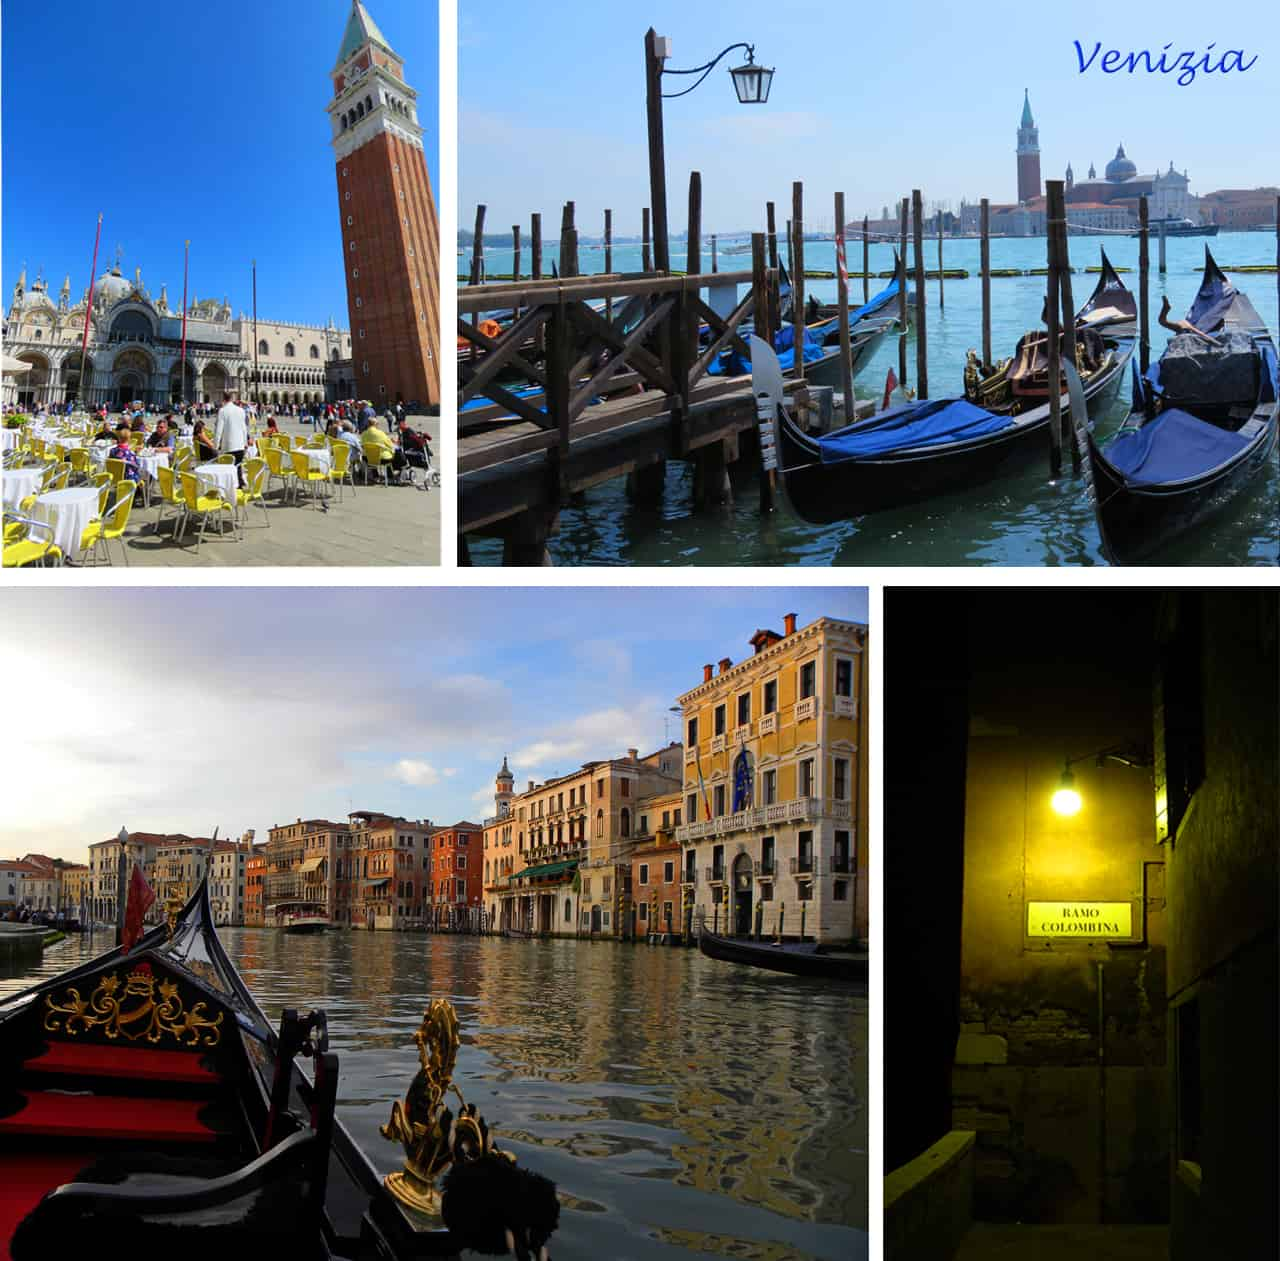 images in Venice